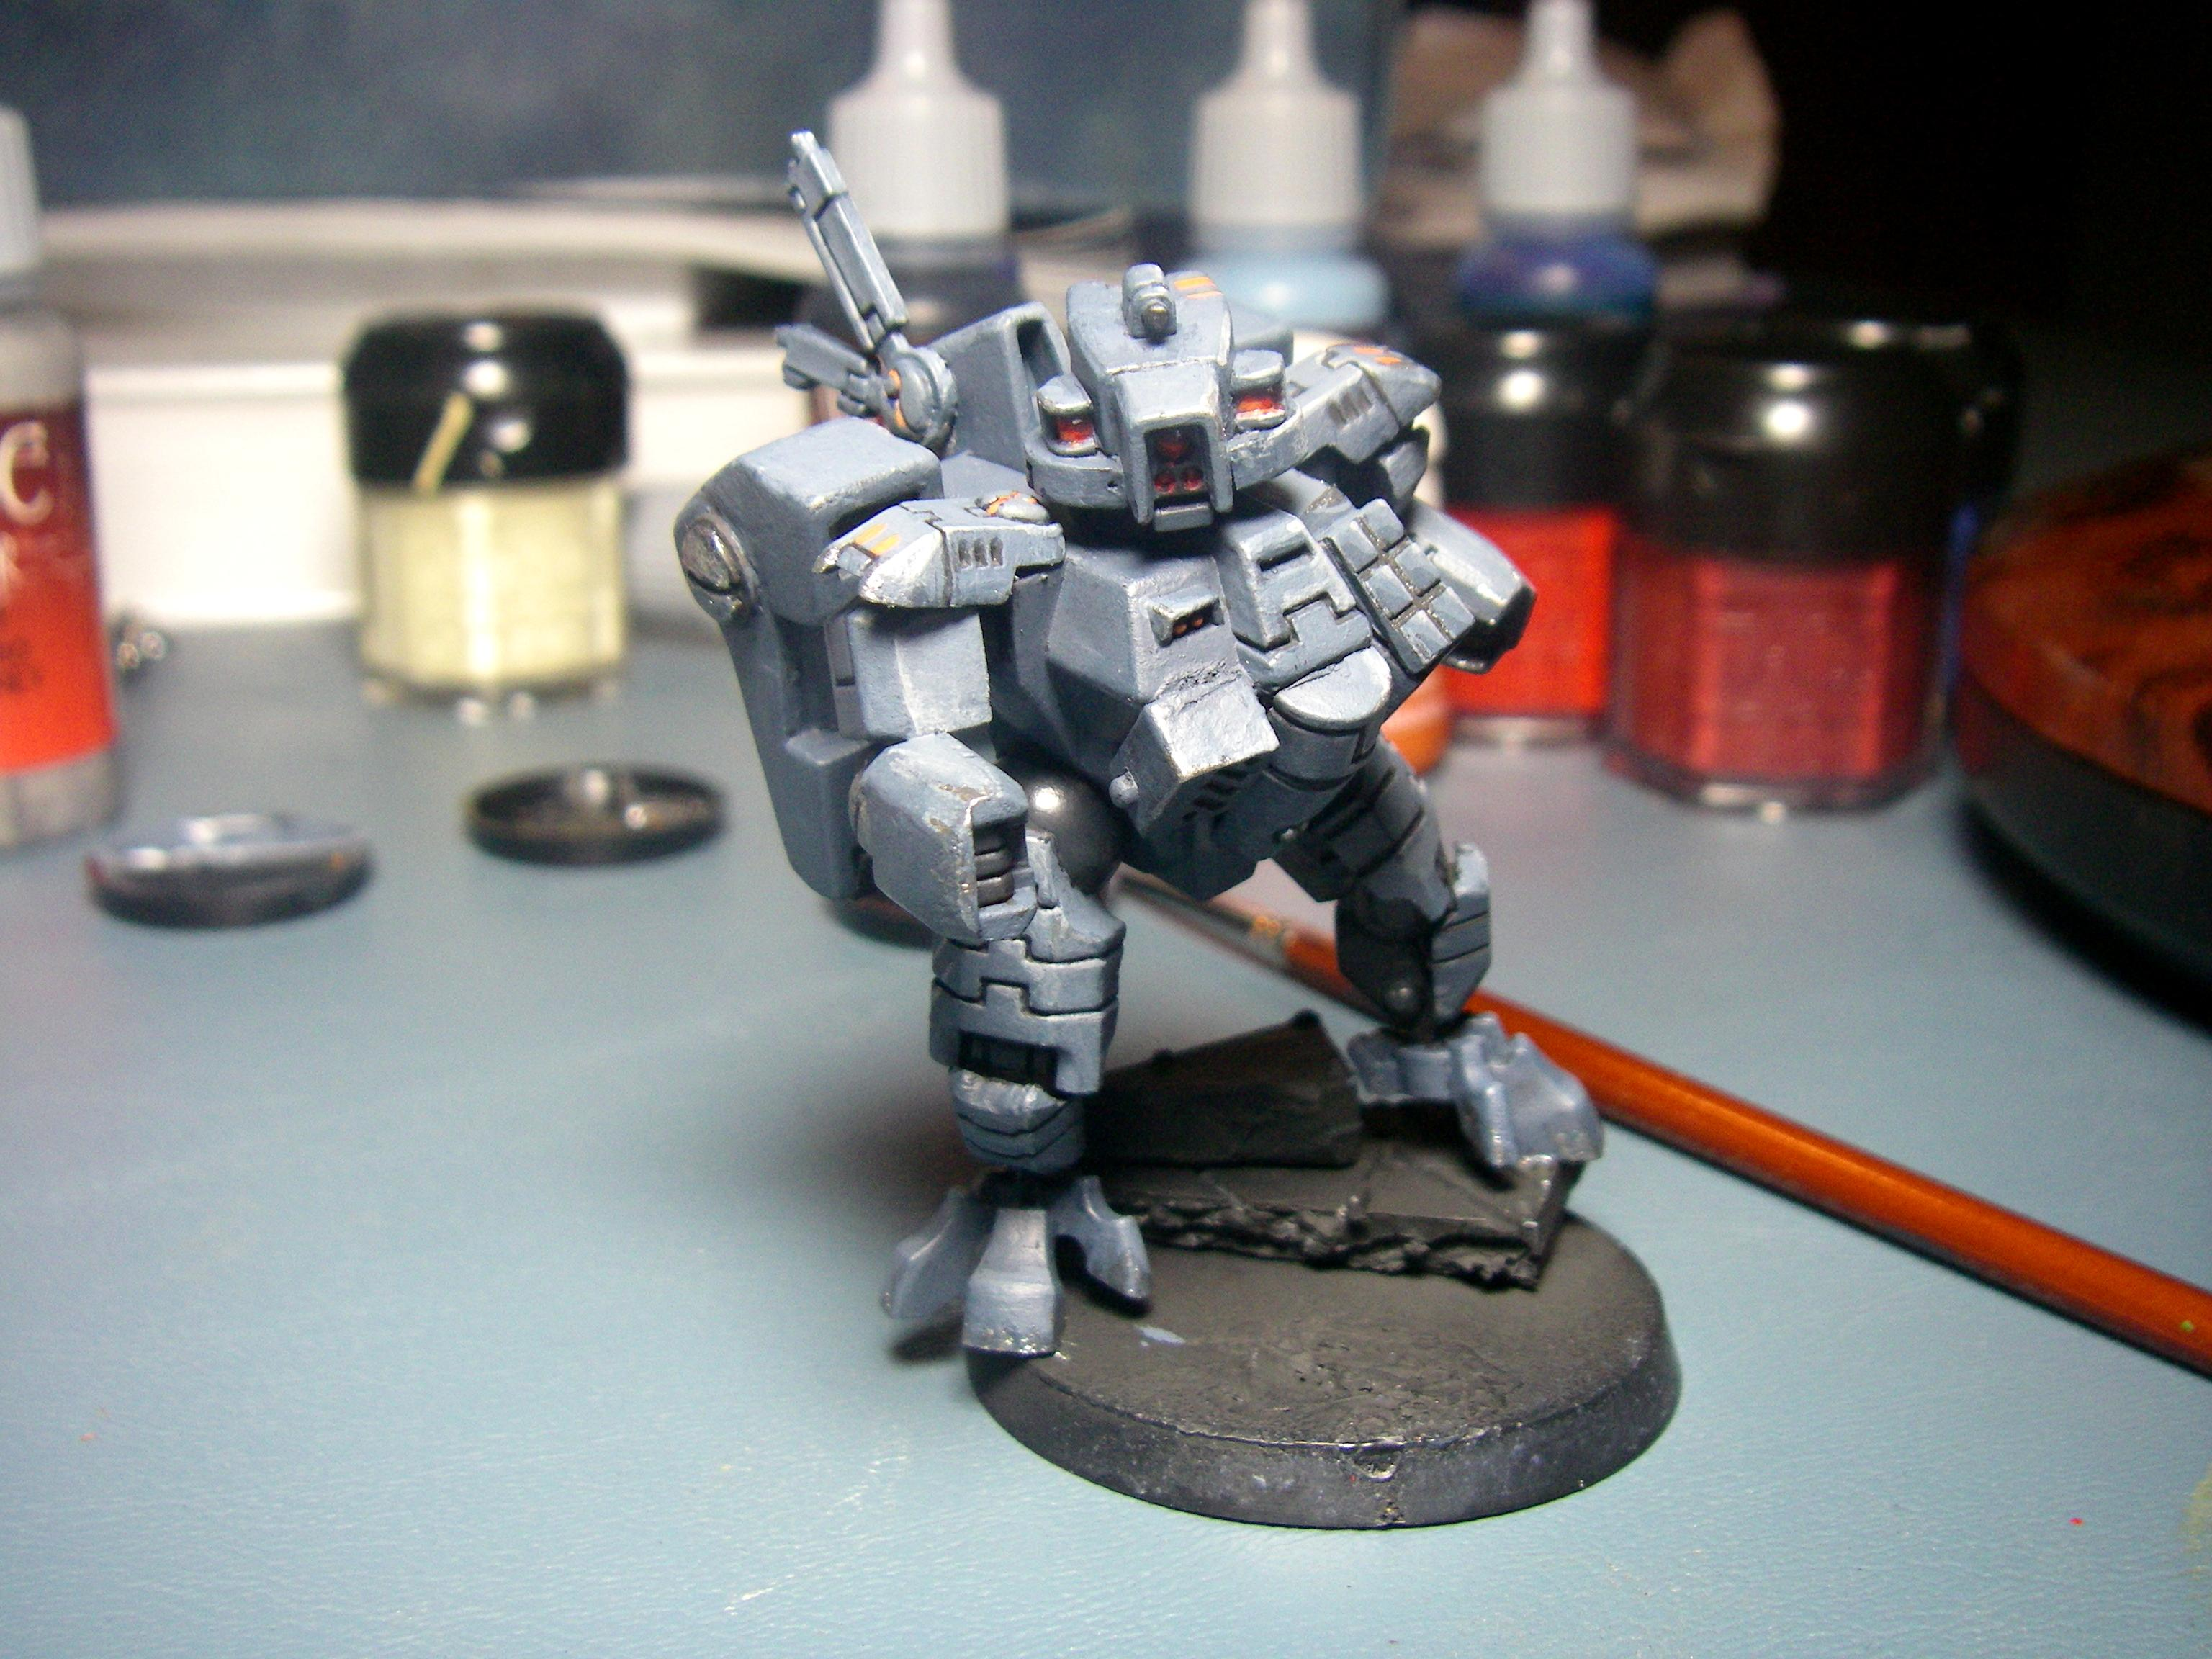 Suit, Tau, Tau Conversion, Tau Crisis Suit, Xv-8